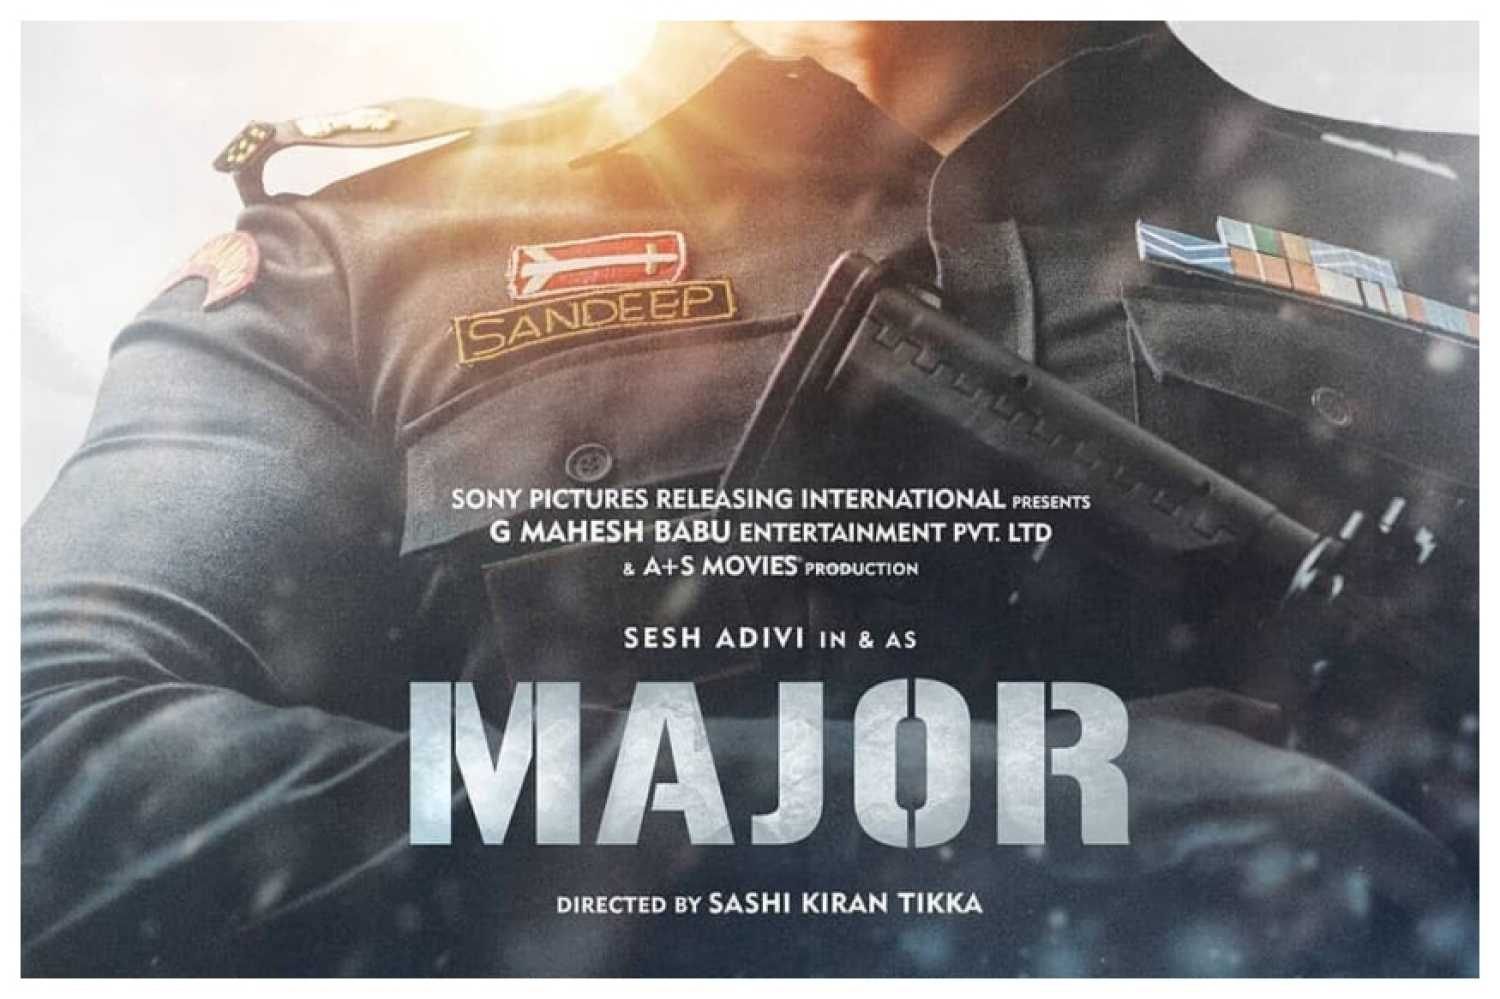 Biopic Movie Major: Cast Details, Release Date, and Expectations